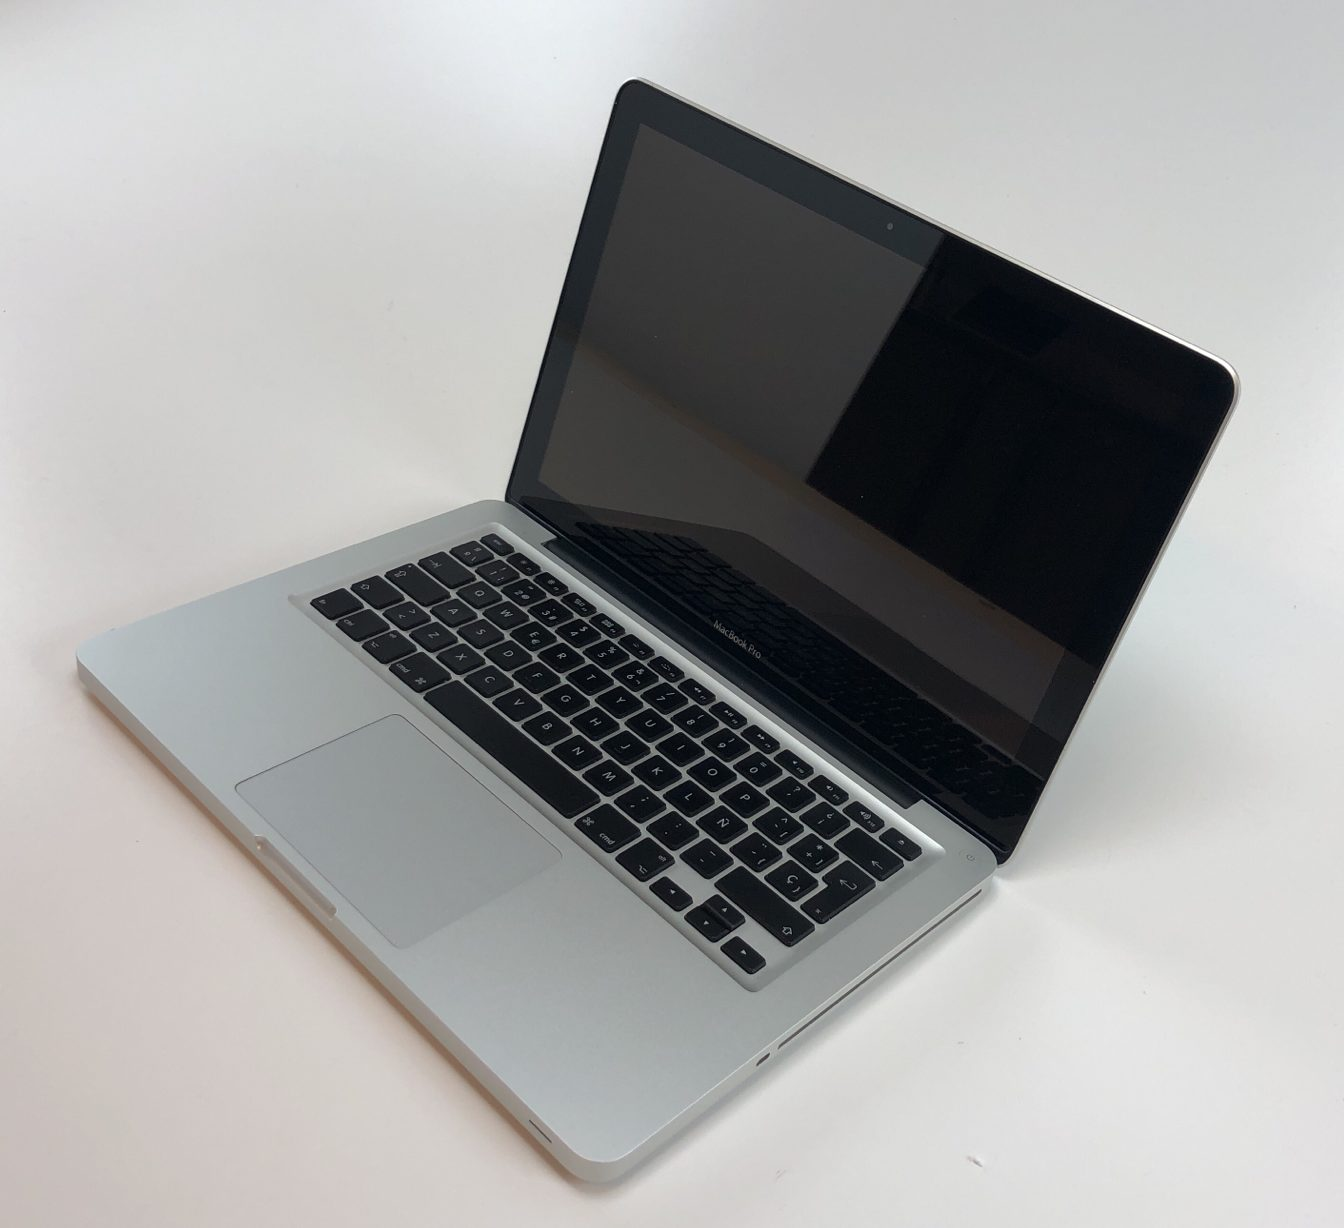 "MacBook Pro 13"" Mid 2012 (Intel Core i5 2.5 GHz 16 GB RAM 512 GB SSD), Intel Core i5 2.5 GHz, 16 GB RAM, 512 GB SSD, imagen 2"